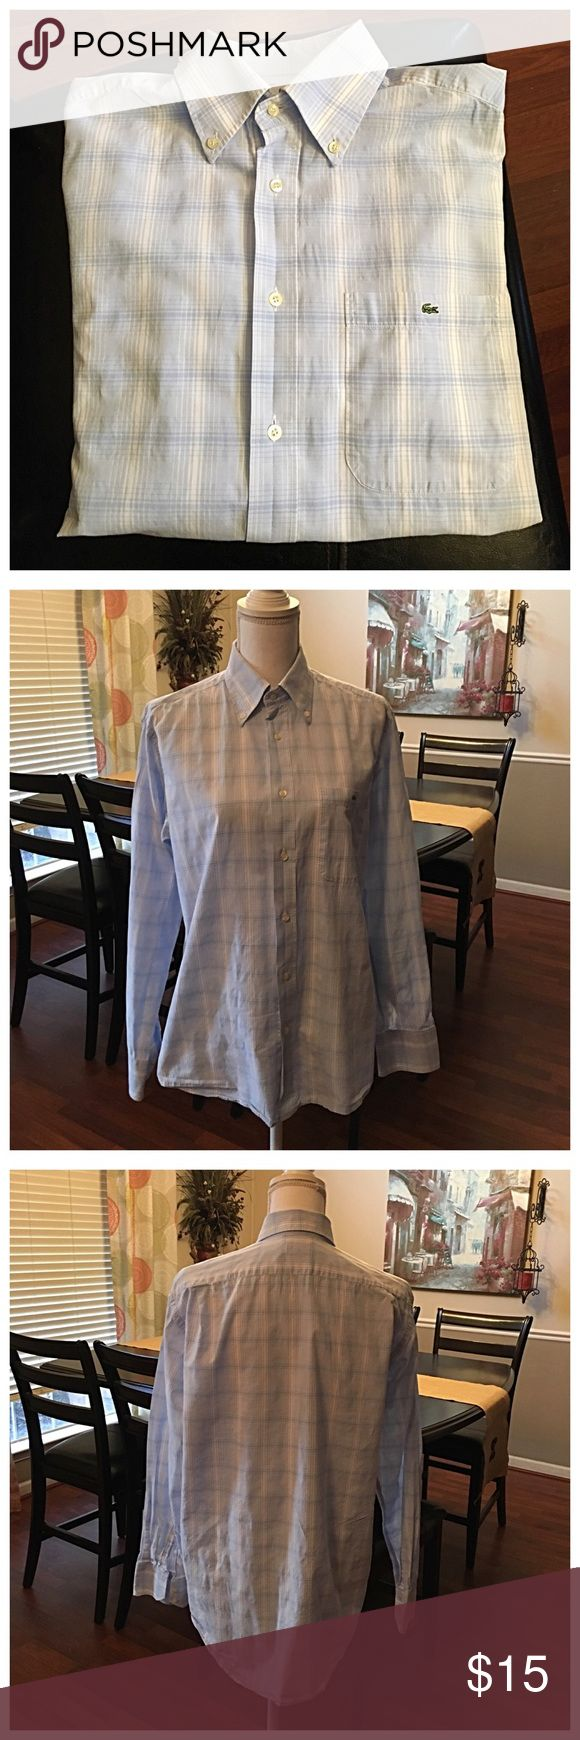 Lacoste Men's dress shirt! Lacoste Men's dress shirt!!  Very nice shirt. No holes stains or tears. Shirt has never been dried. Size medium. Thanks for shopping my closet💋 Lacoste Shirts Dress Shirts